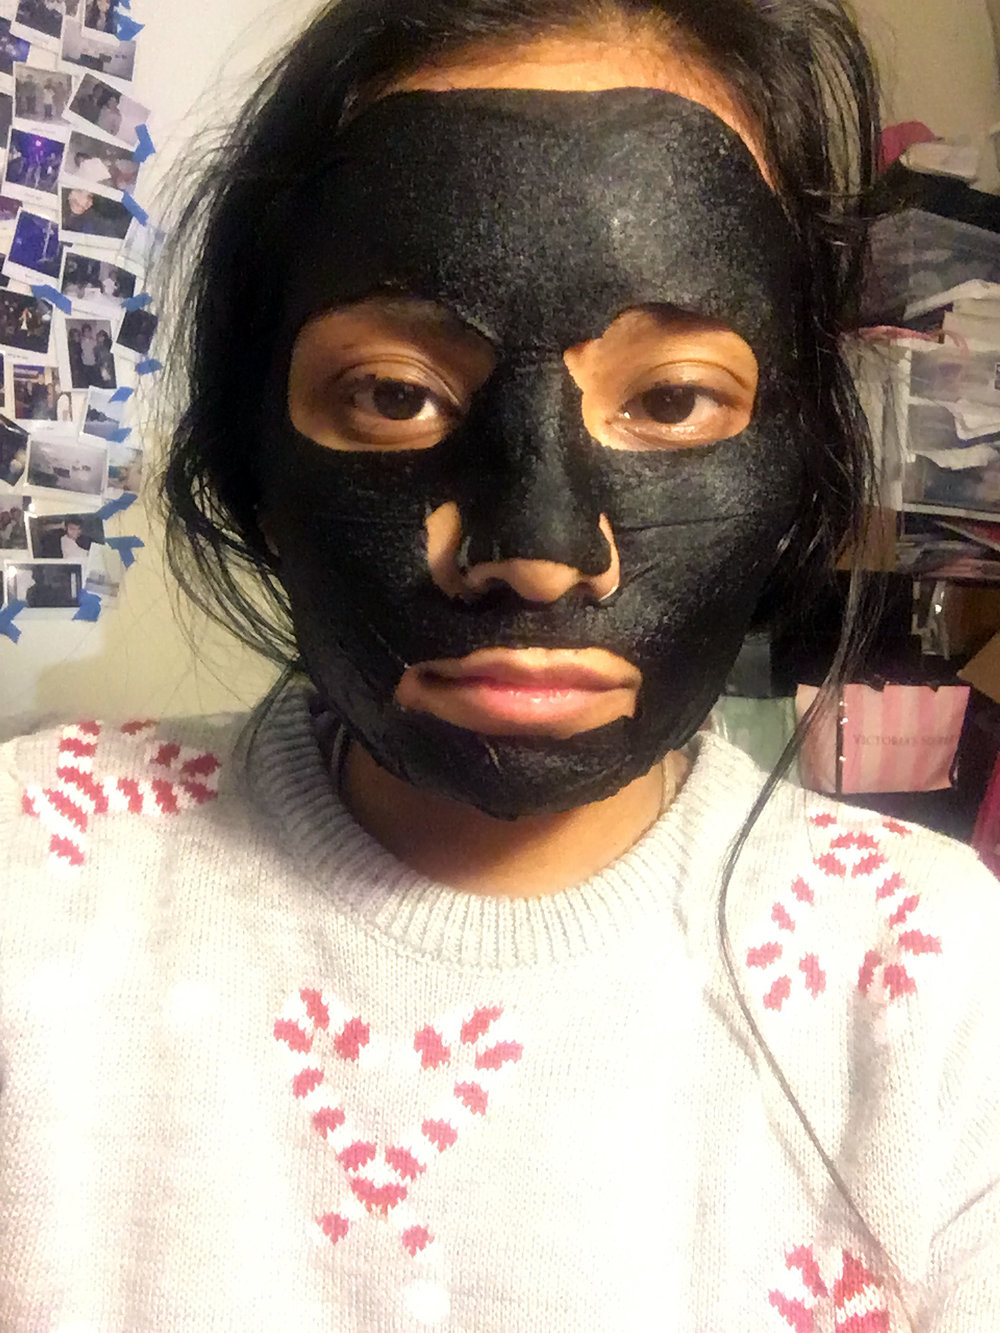 Ipsy-February-Review-Soo-AE-Sheet-Mask-Duo-Purifying-Black-Charcoal-Mask-LINDATENCHITRAN-1-1932x2576.jpg